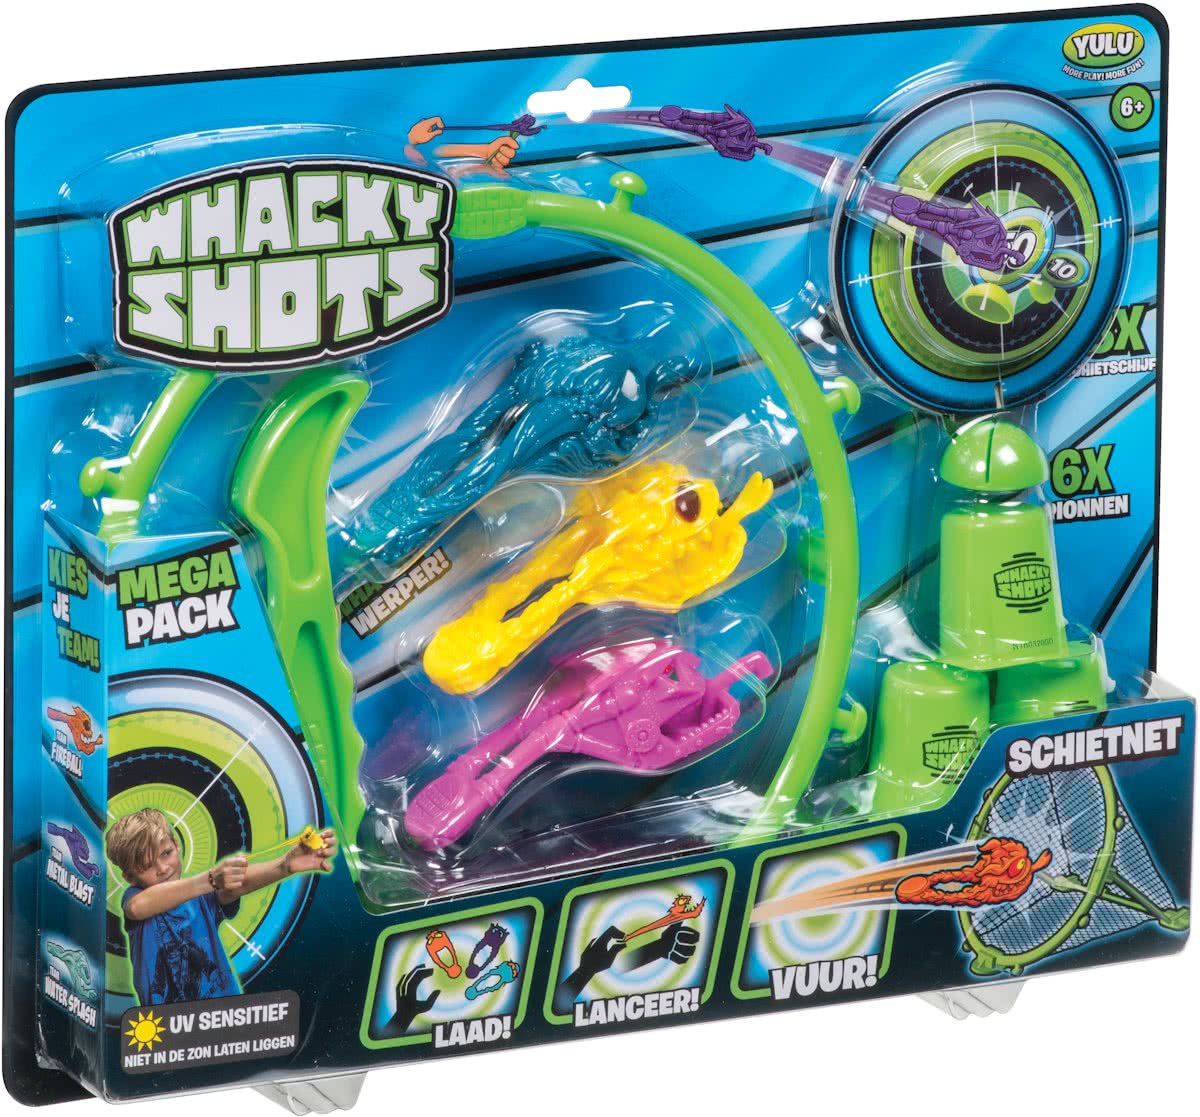 Whacky Shots Mega Pack